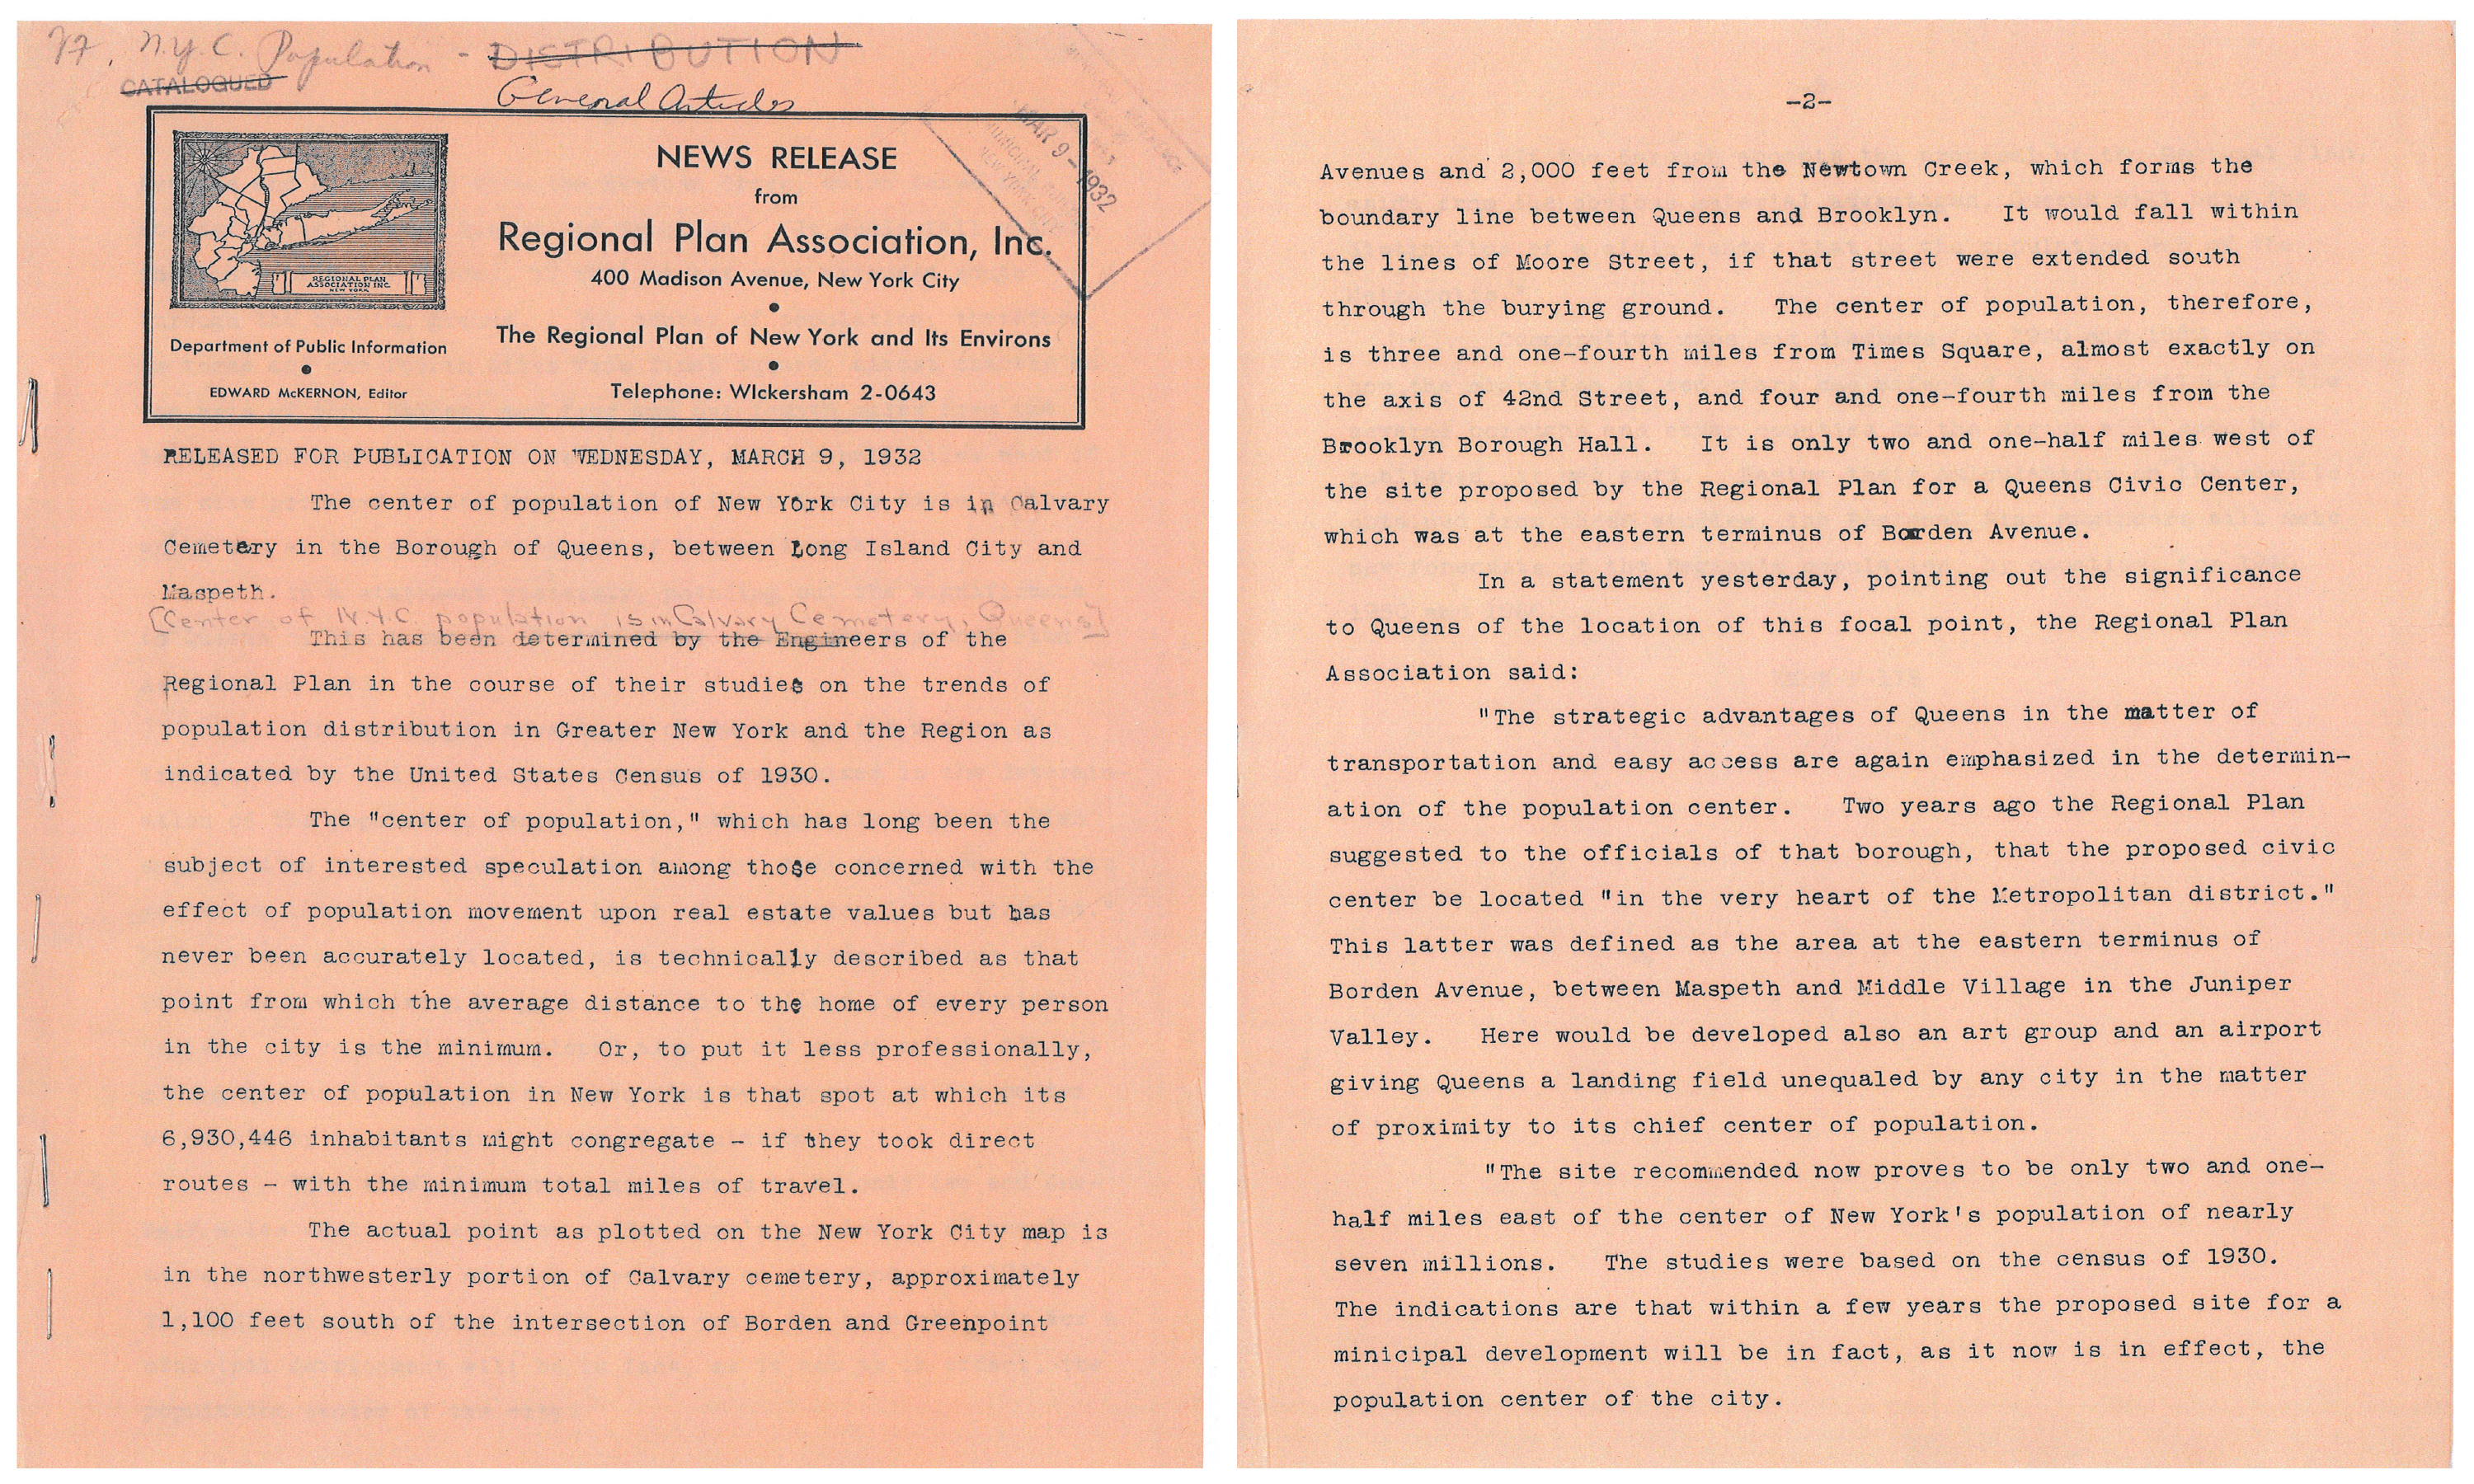 A scanned archived page of a News Release from Regional Plan Association, Inc. The page is dated Wednwsday, March 9, 1932